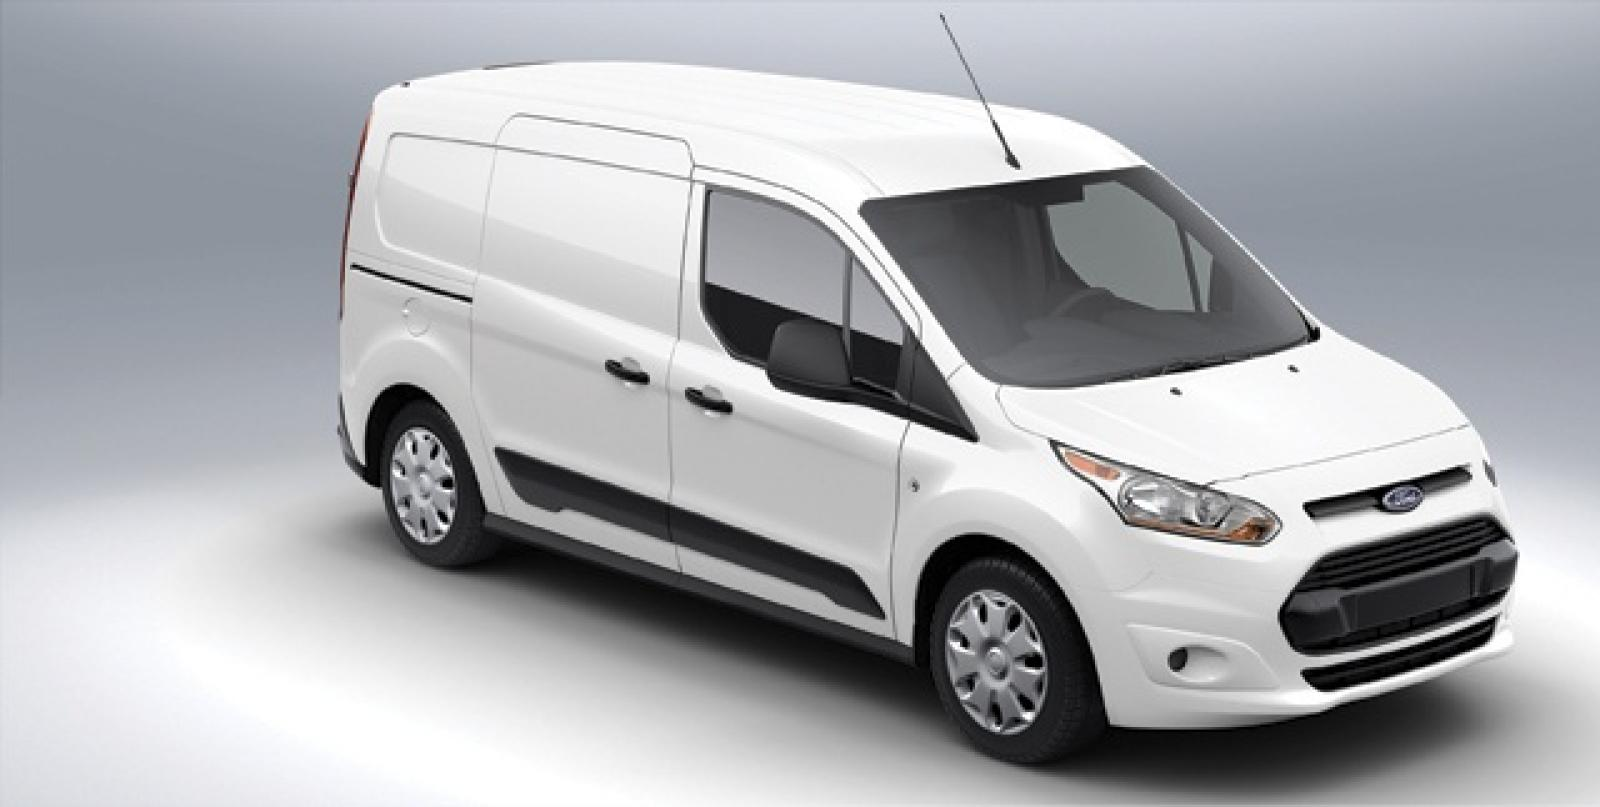 2015 ford transit connect information and photos zombiedrive. Black Bedroom Furniture Sets. Home Design Ideas